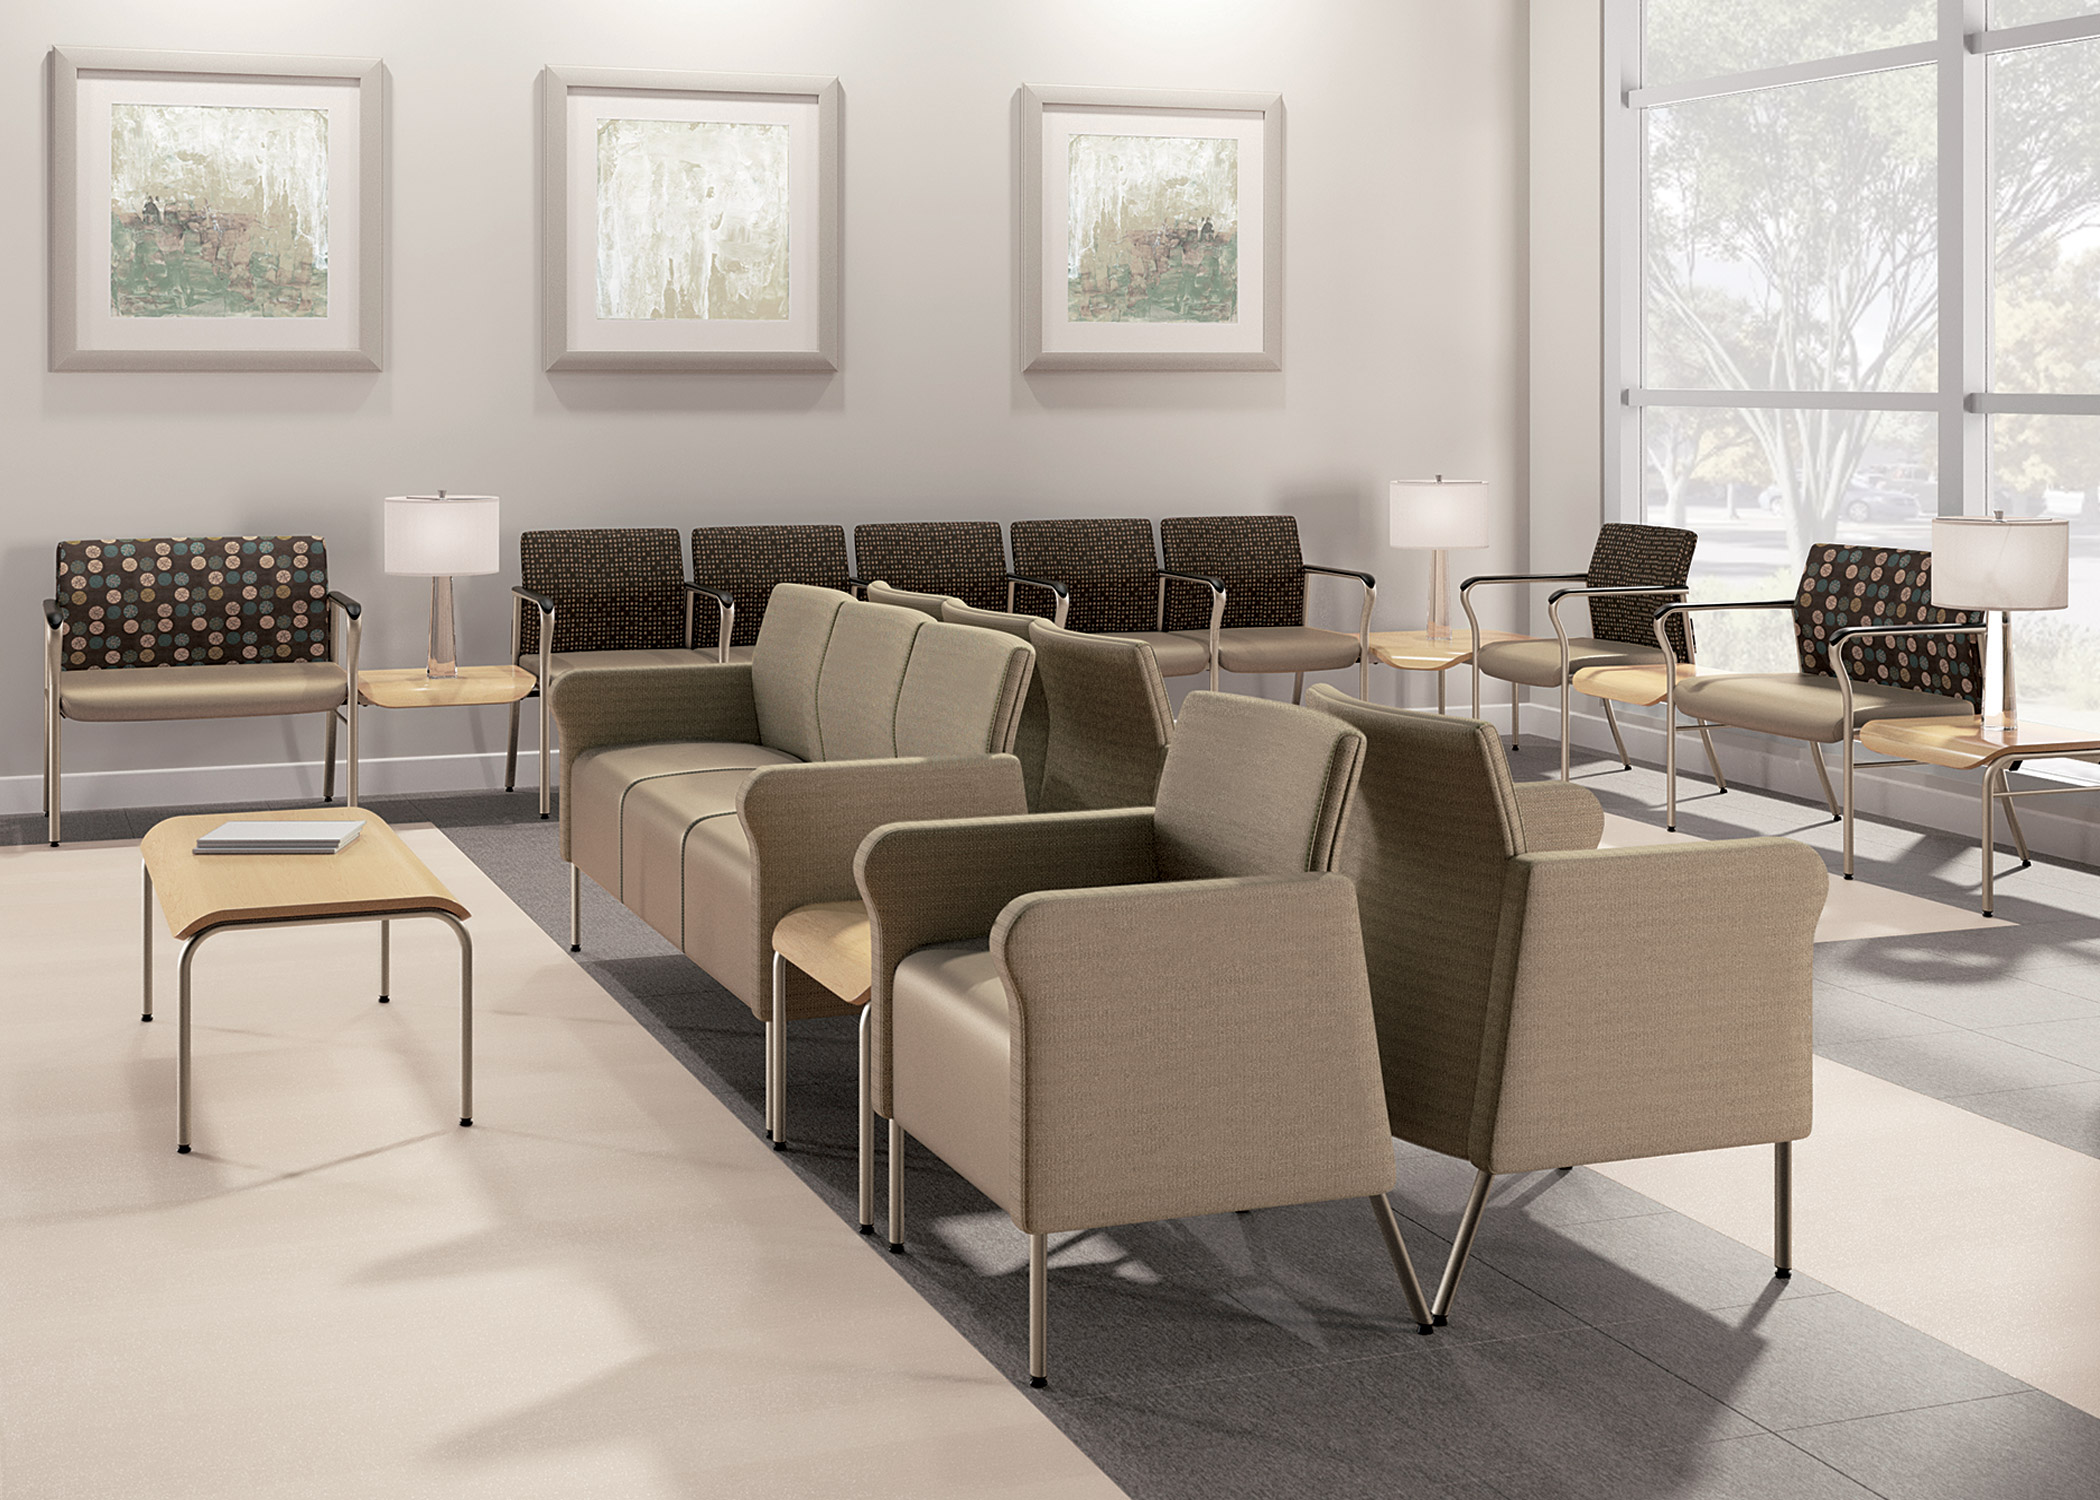 Confide national office furniture for Furniture configurations for small spaces